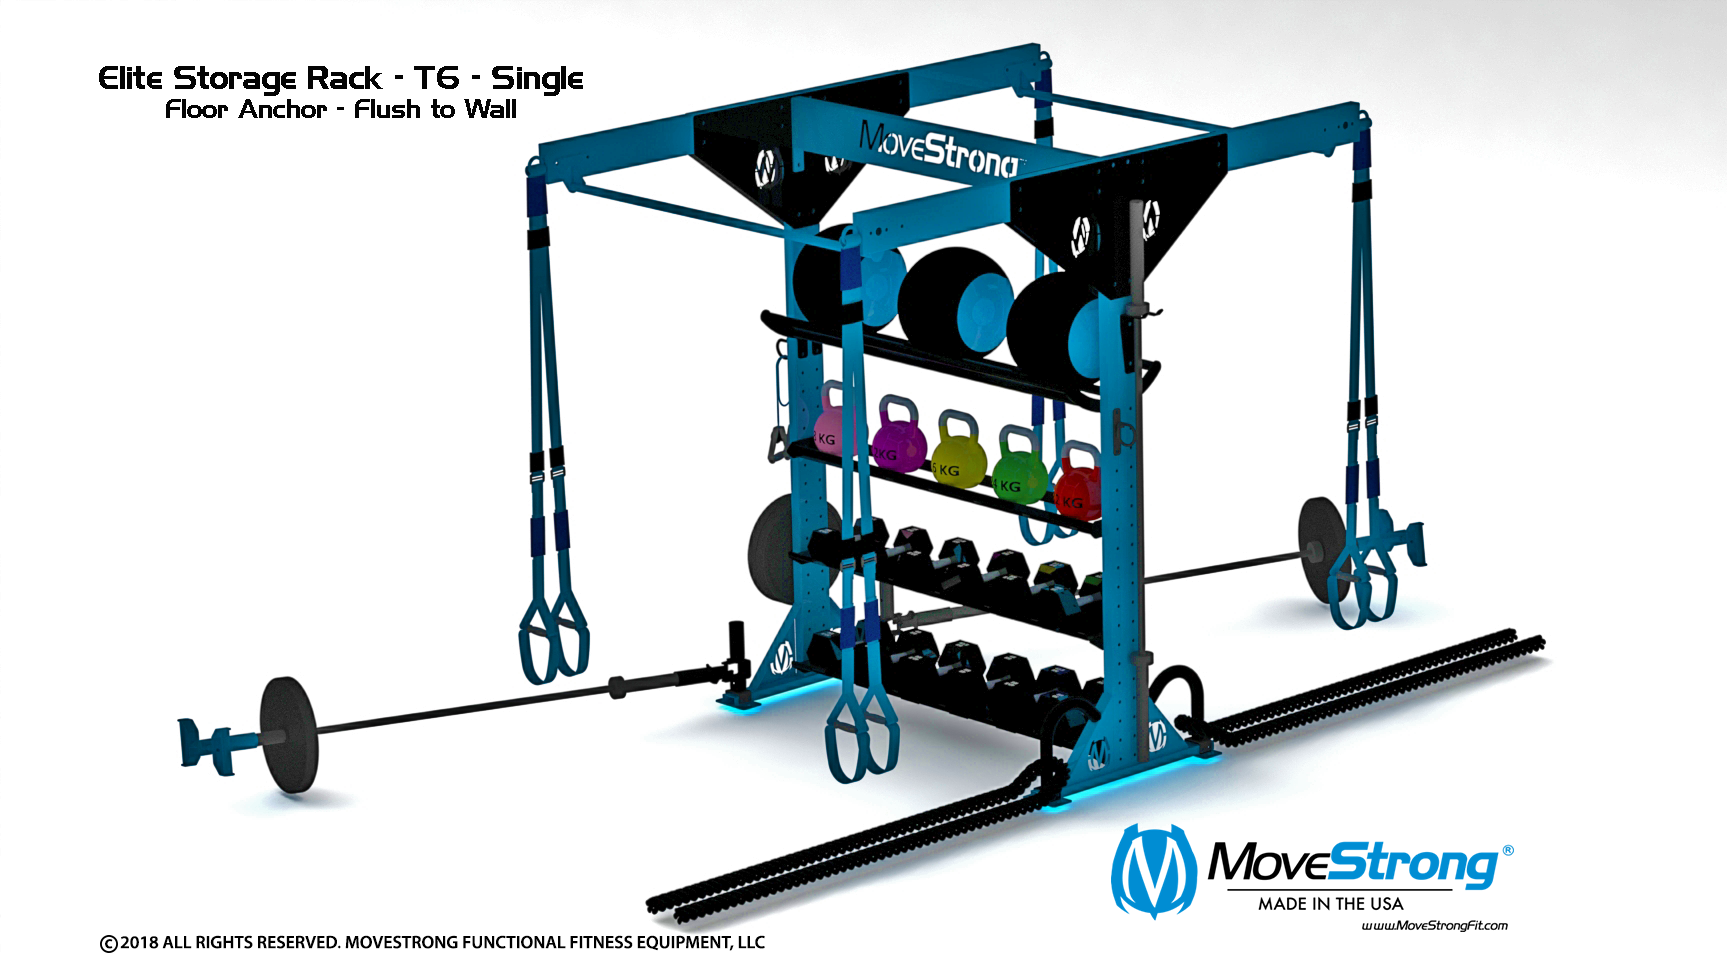 Functional Fitness Storage with Top mount Pull-up Bar Extenstions